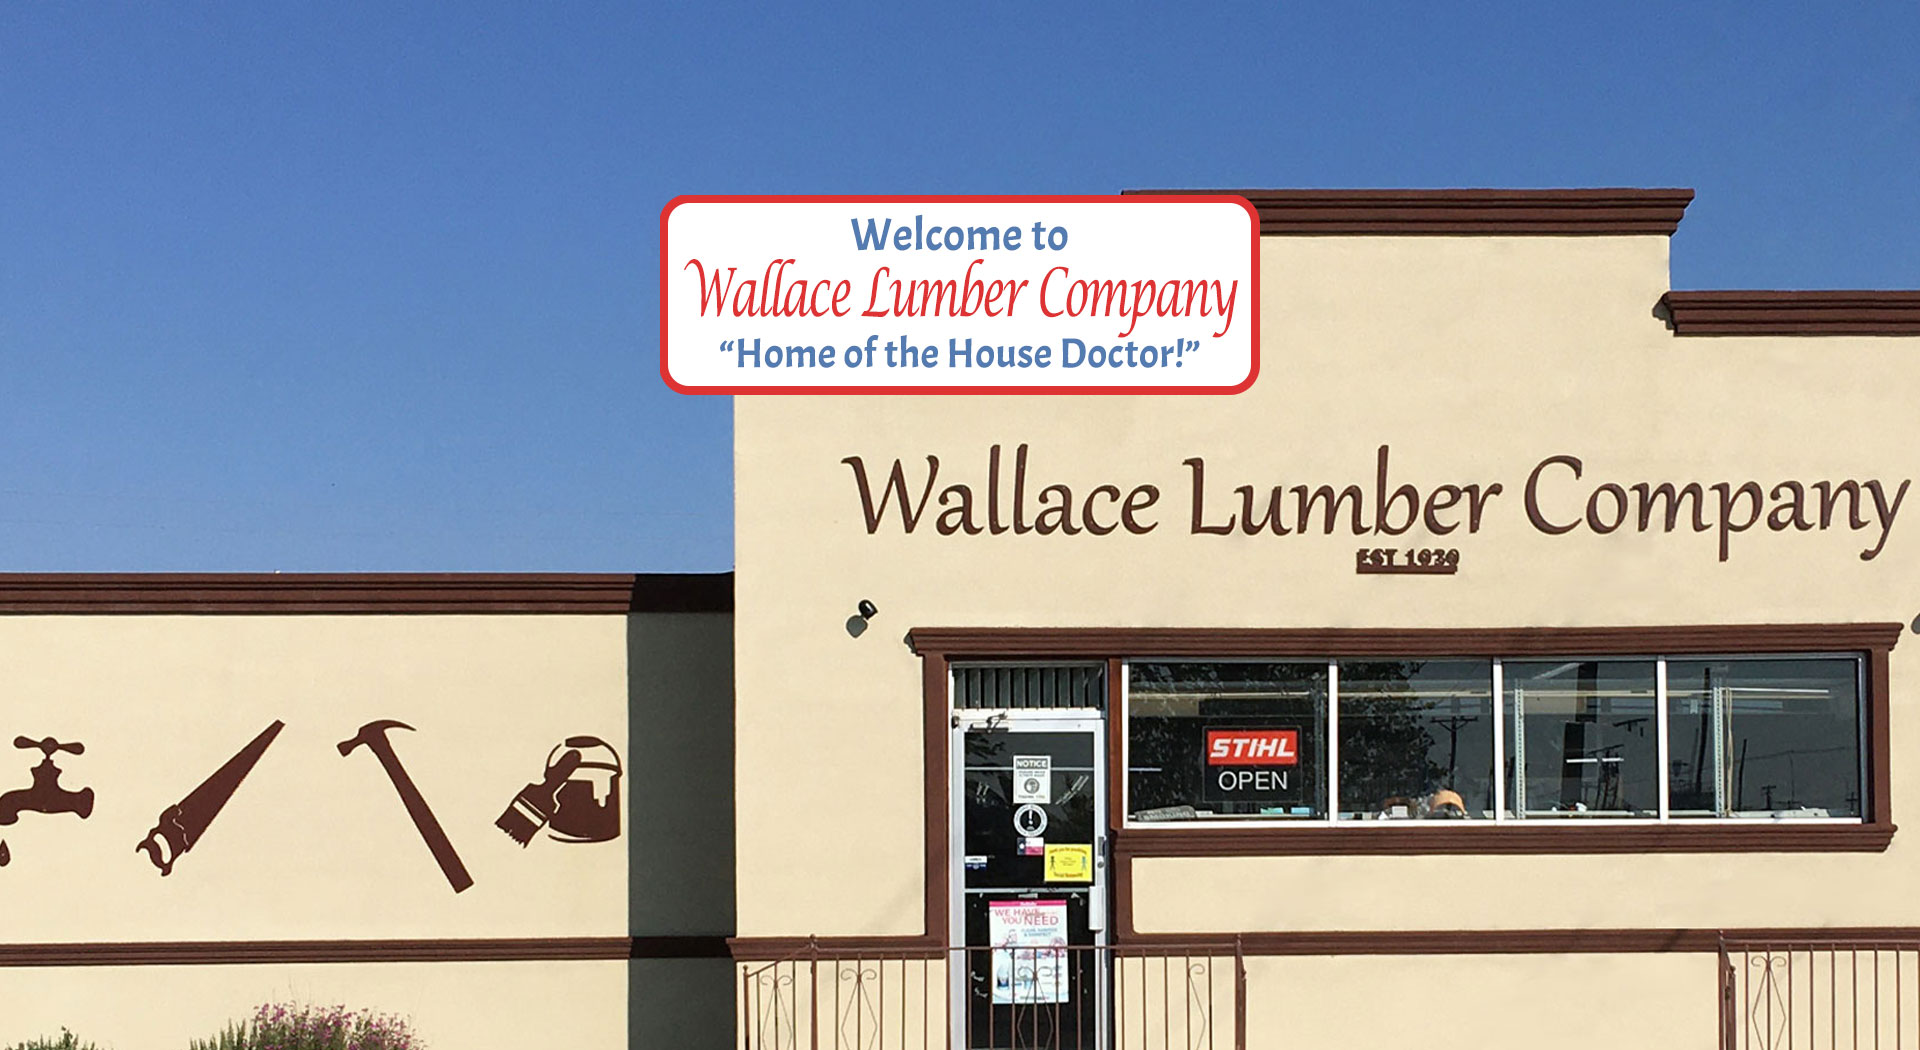 Wallace Lumber Company Storefront